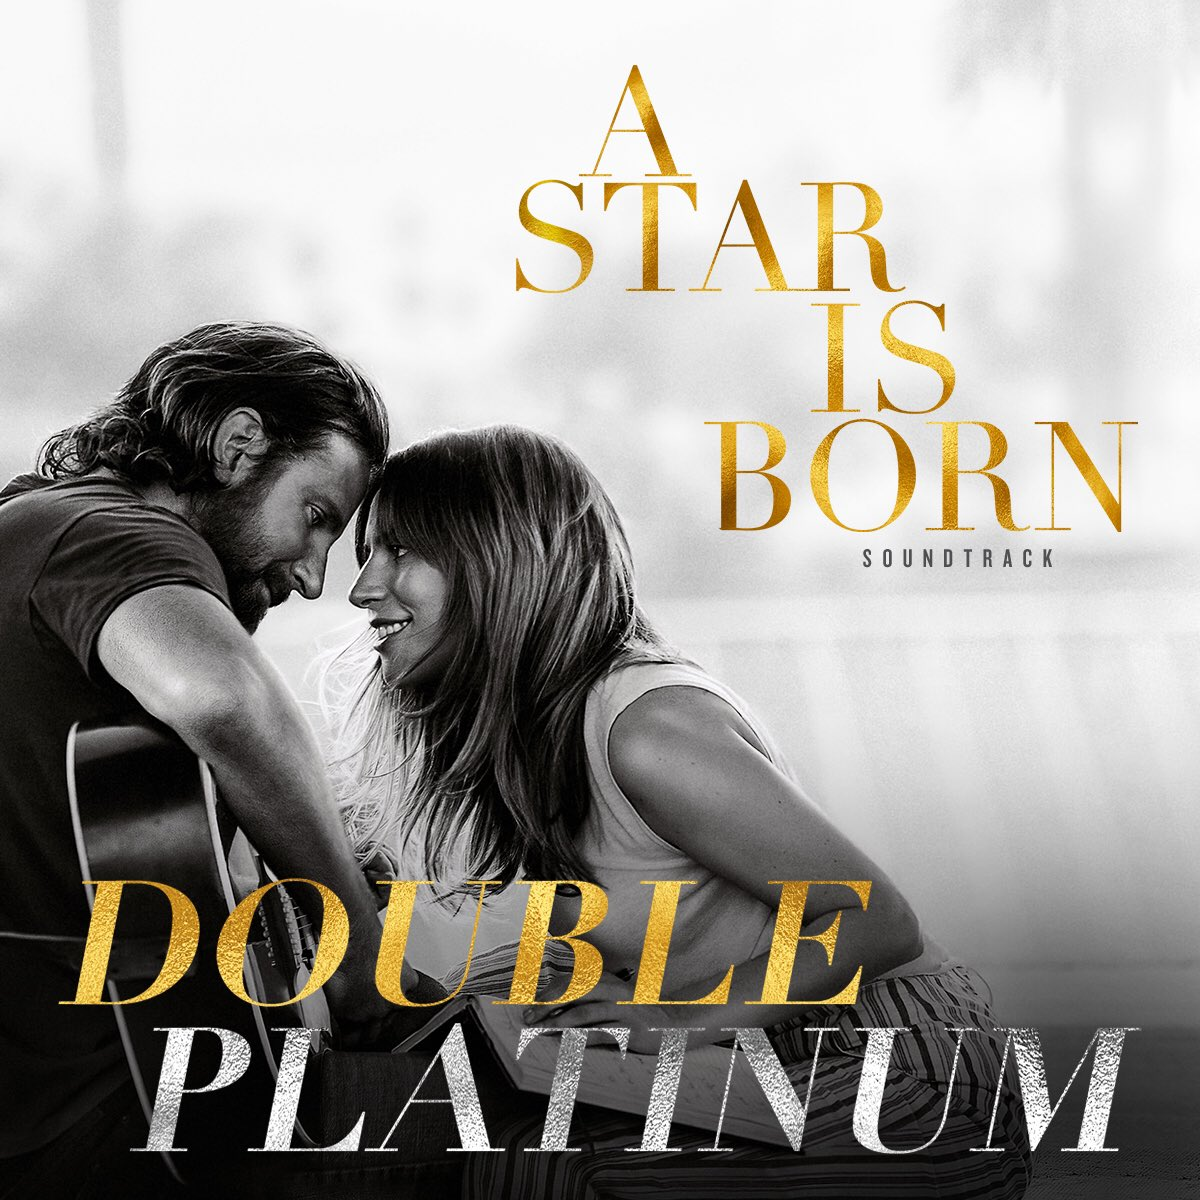 Thank you to all the fans for making the #AStarIsBorn  soundtrack Double Platinum, and the #1  selling album in the US!